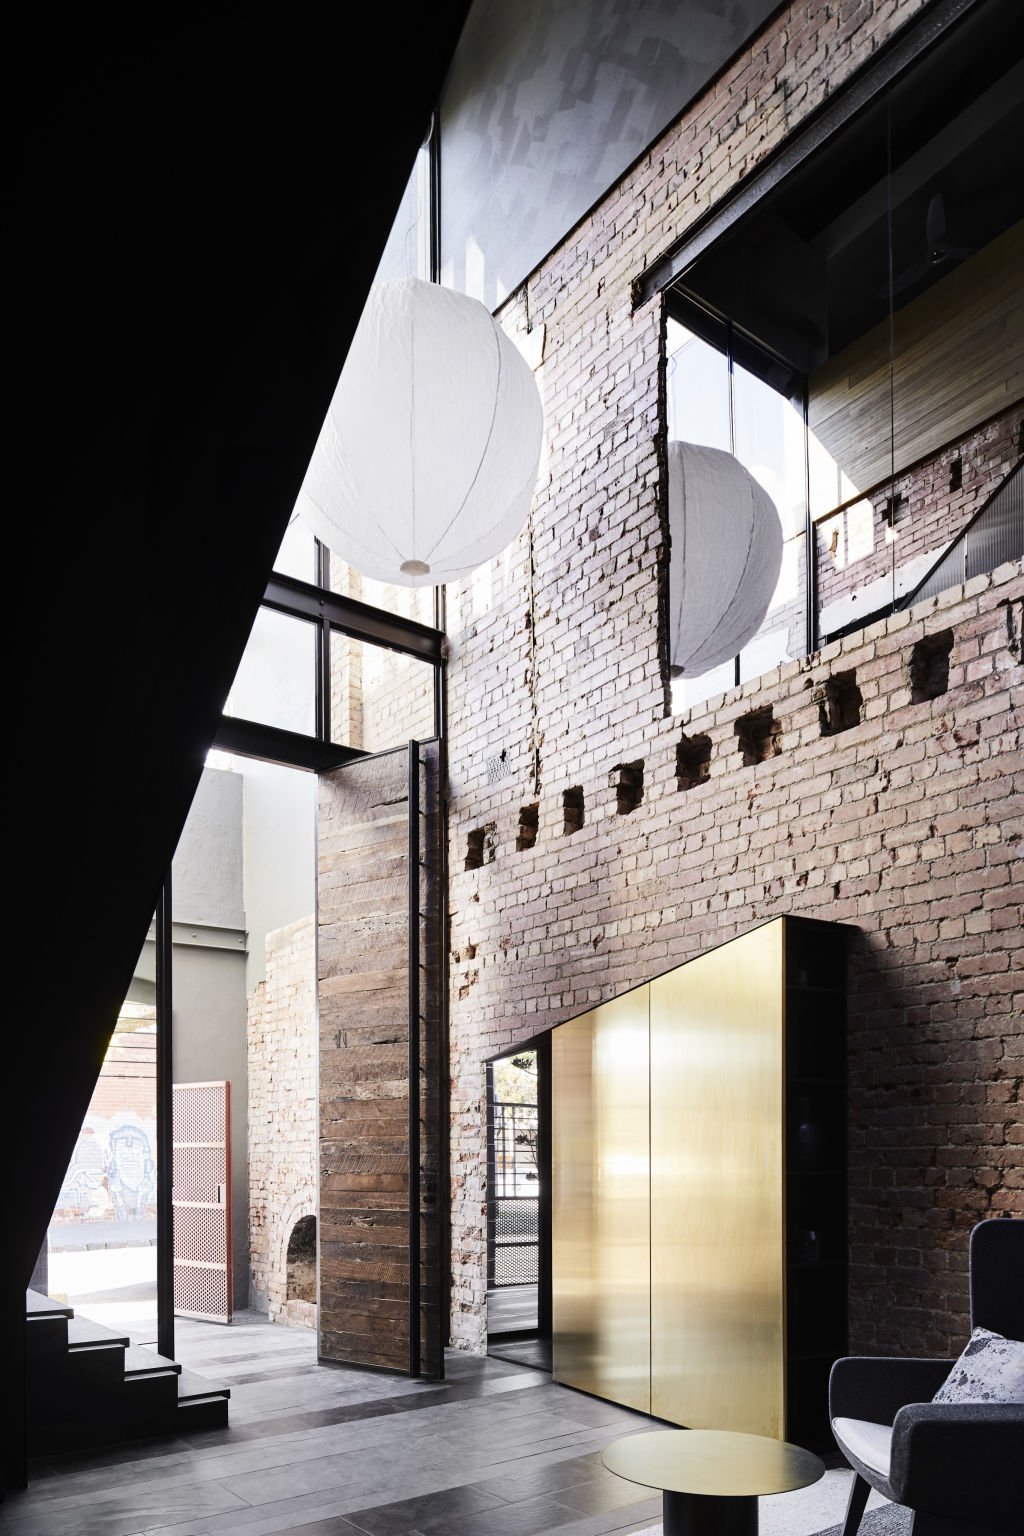 A_soaring_void_brings_light_into_a_moody_industrially_interesting_residential_interior_by_Splinter_Society._Photo_Sharyn_Cairns_e3y7iv